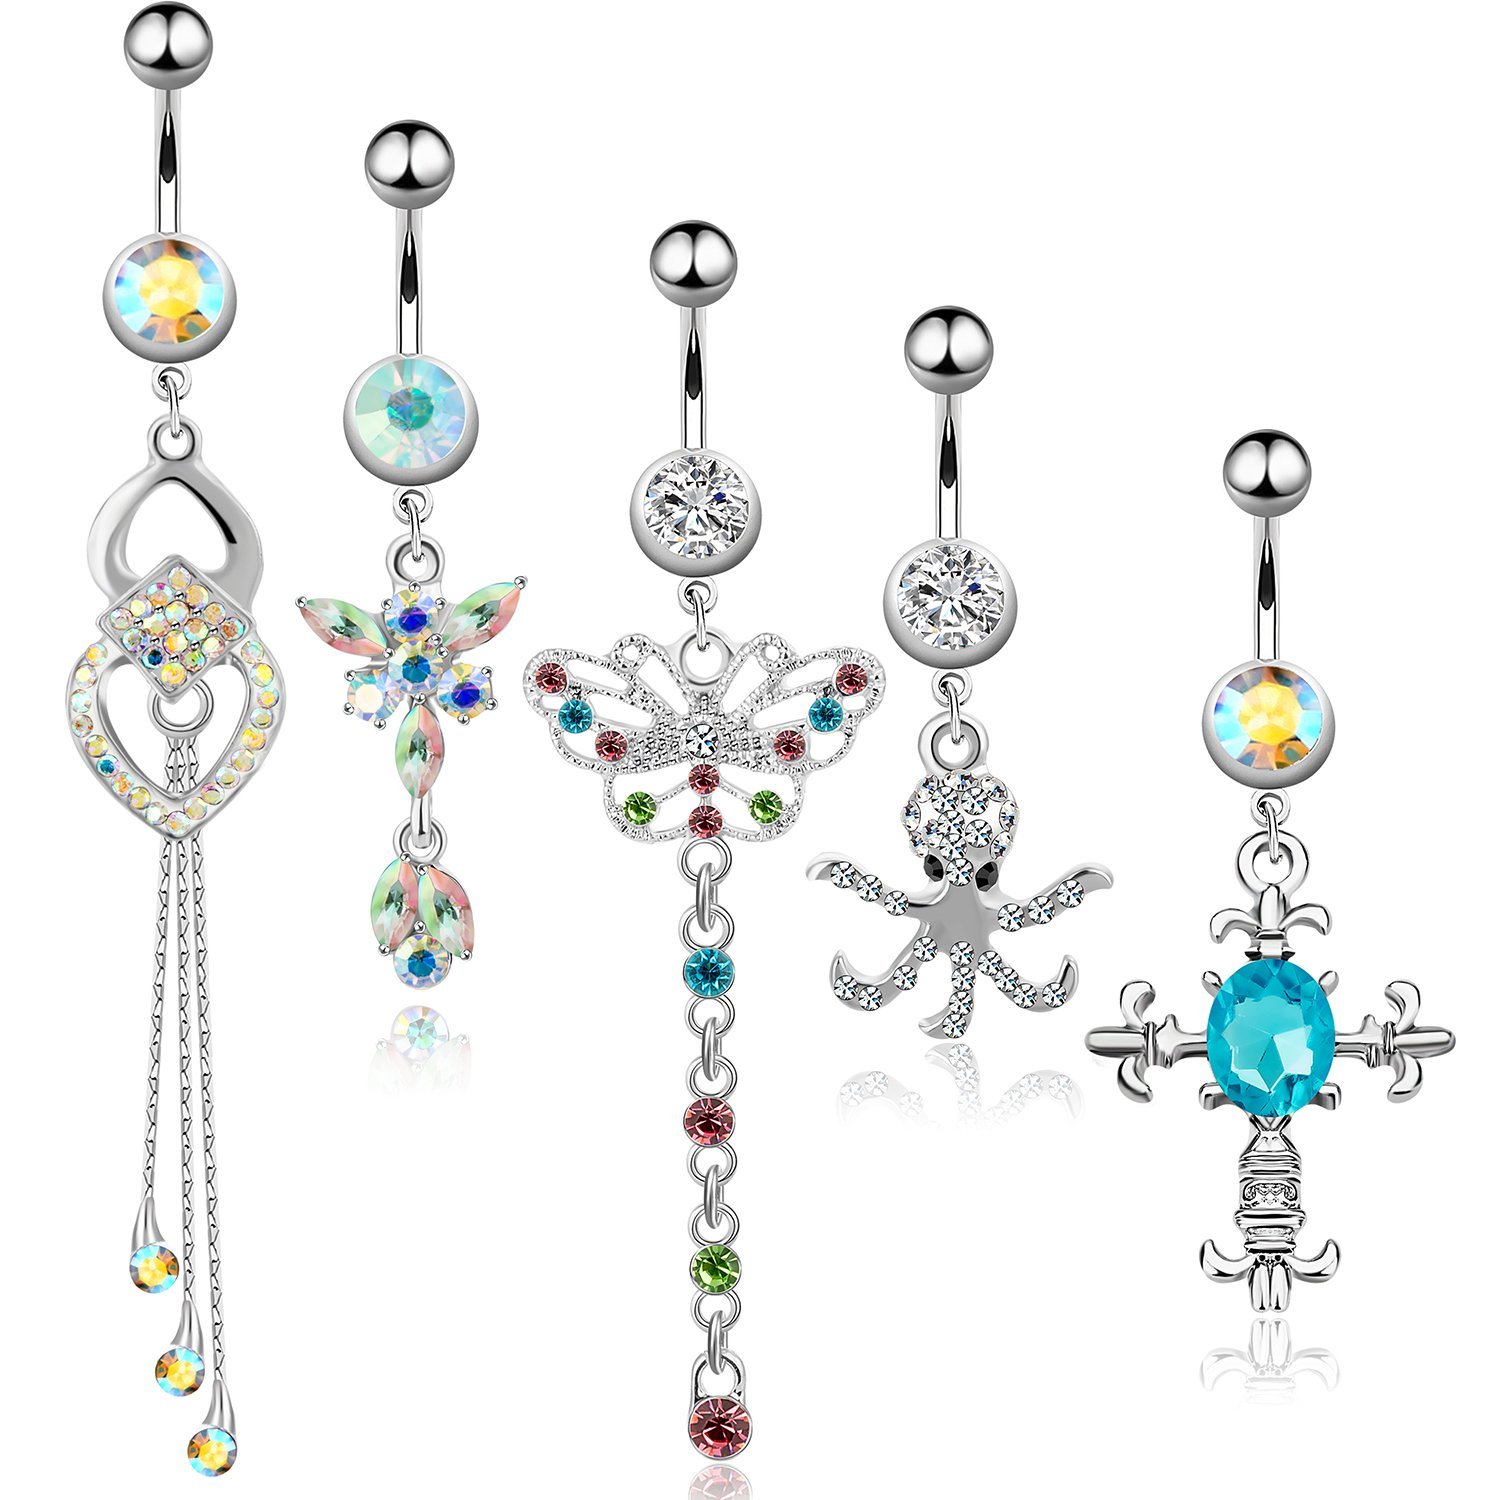 5Pcs Dangle Belly Button Rings Set Navel Surgical Stainless Steel 14G Body Piercing Jewelry CABBE KALLO